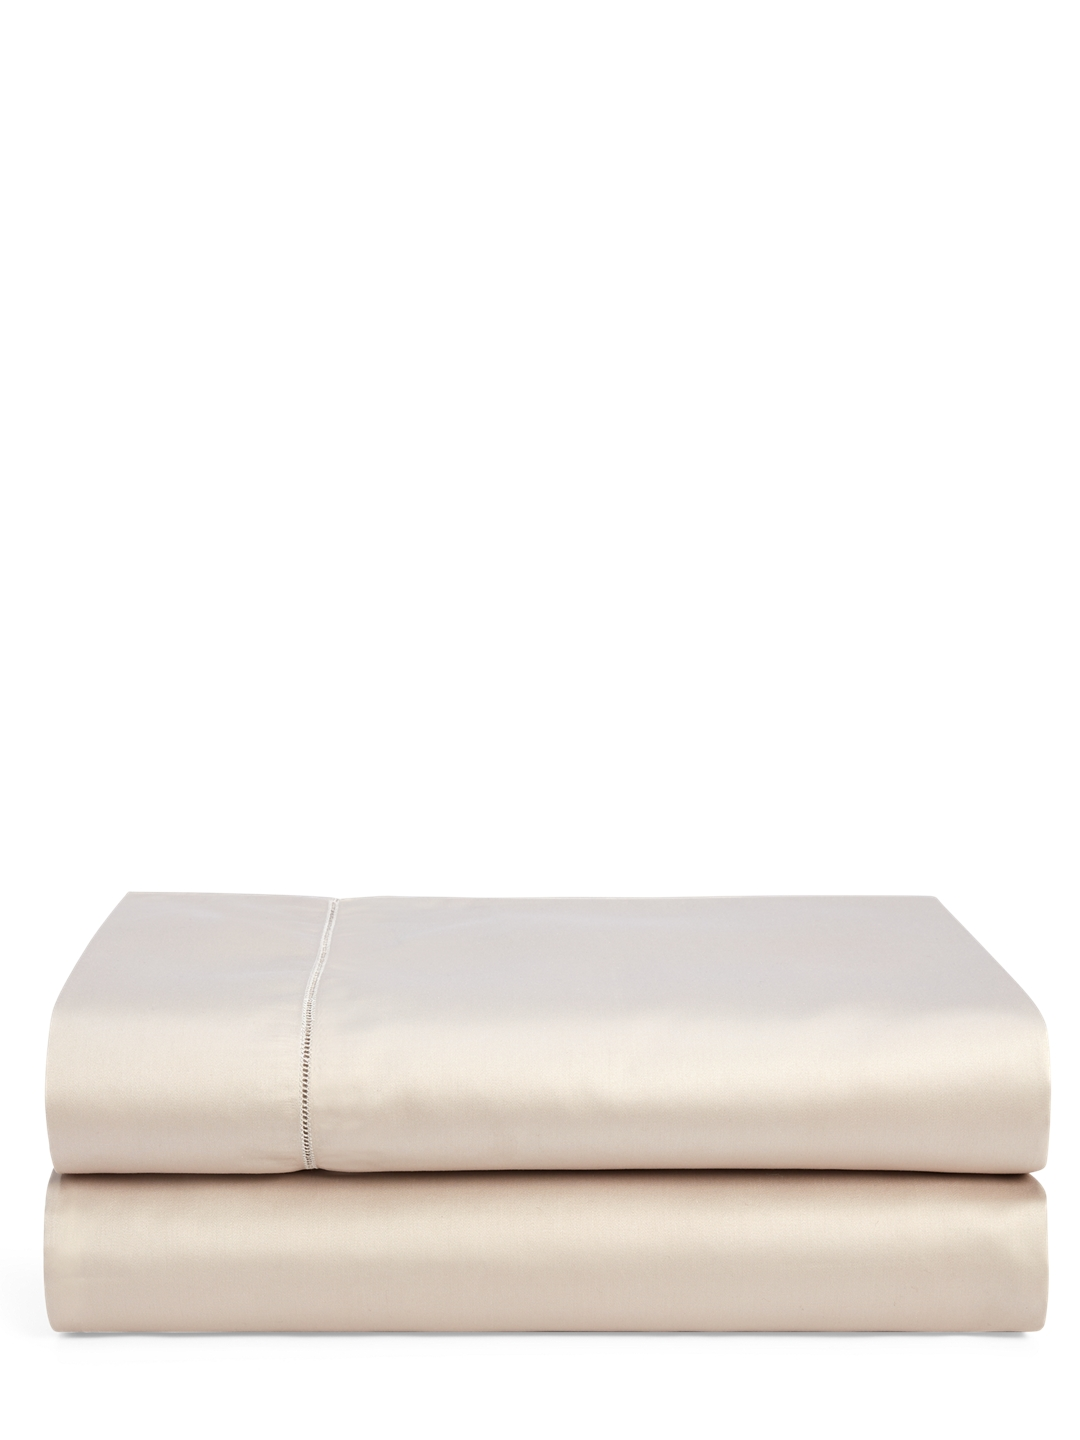 luxury bed sheets, pillowcases, & bed sheet sets | ralph lauren - Art Deco Mobel Ralph Lauren Home